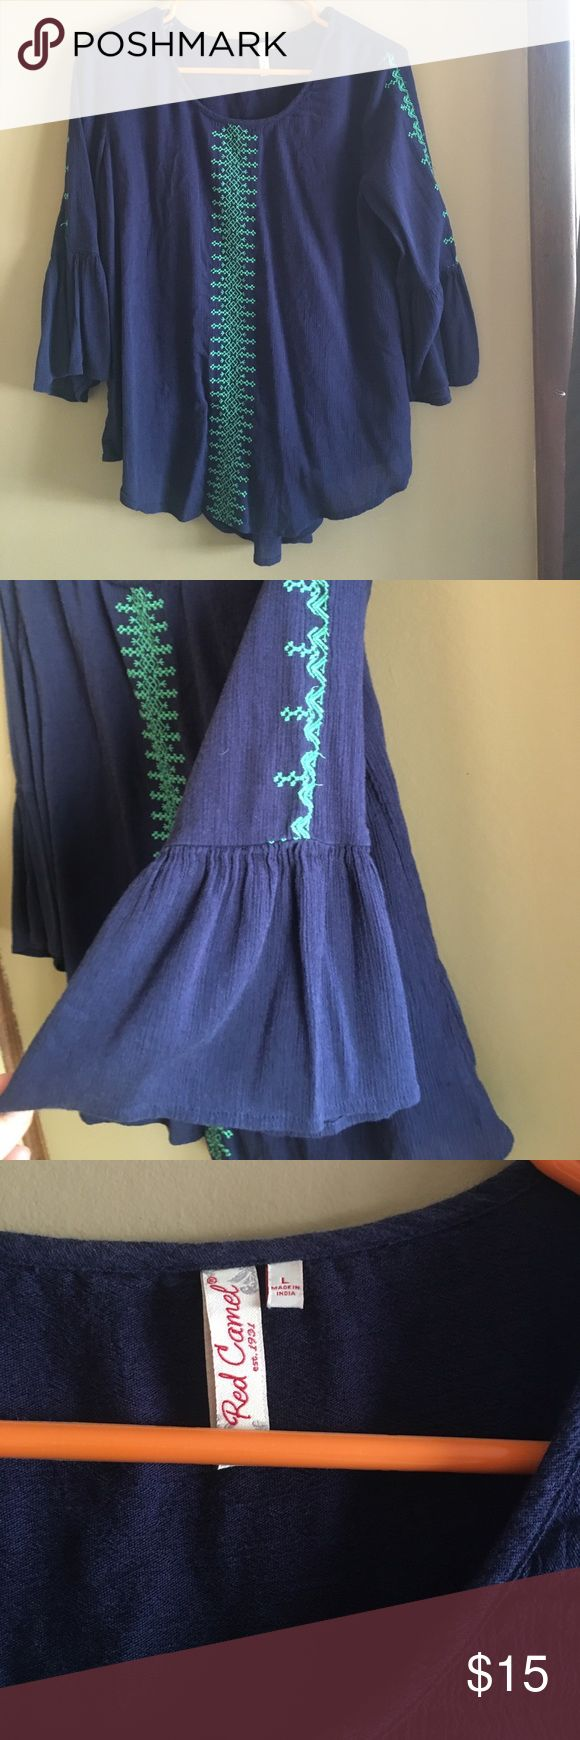 BNWOT flowy navy blue and green blouse Size: large. Brand: Red Camel. 🔹 brand new without tags. Bell sleeve. Navy blue and green. Pretty stitching detail. Light weight. Red Camel Tops Blouses